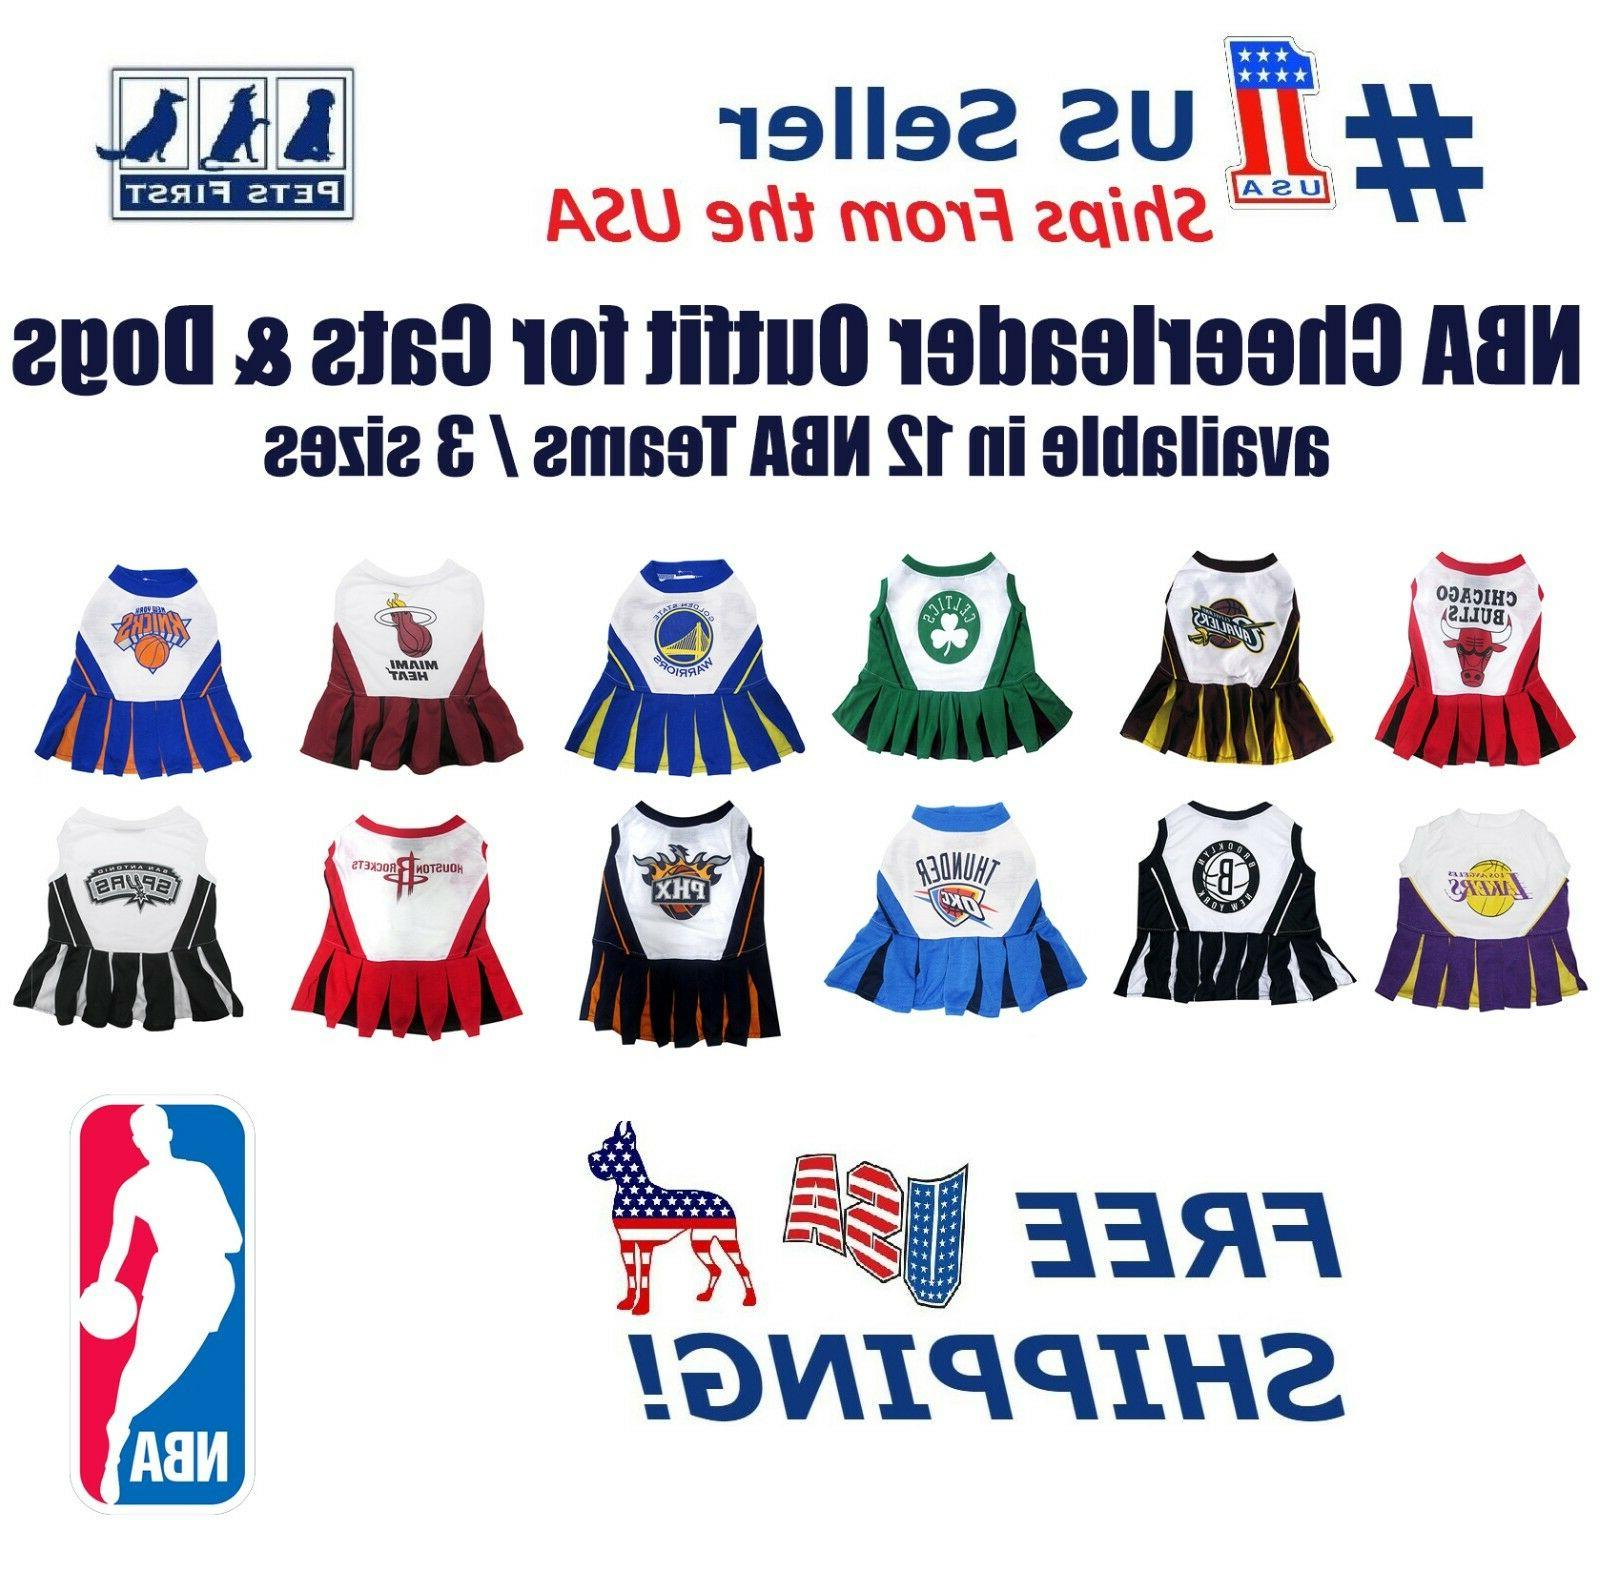 nba licensed cheerleader outfit for dogs